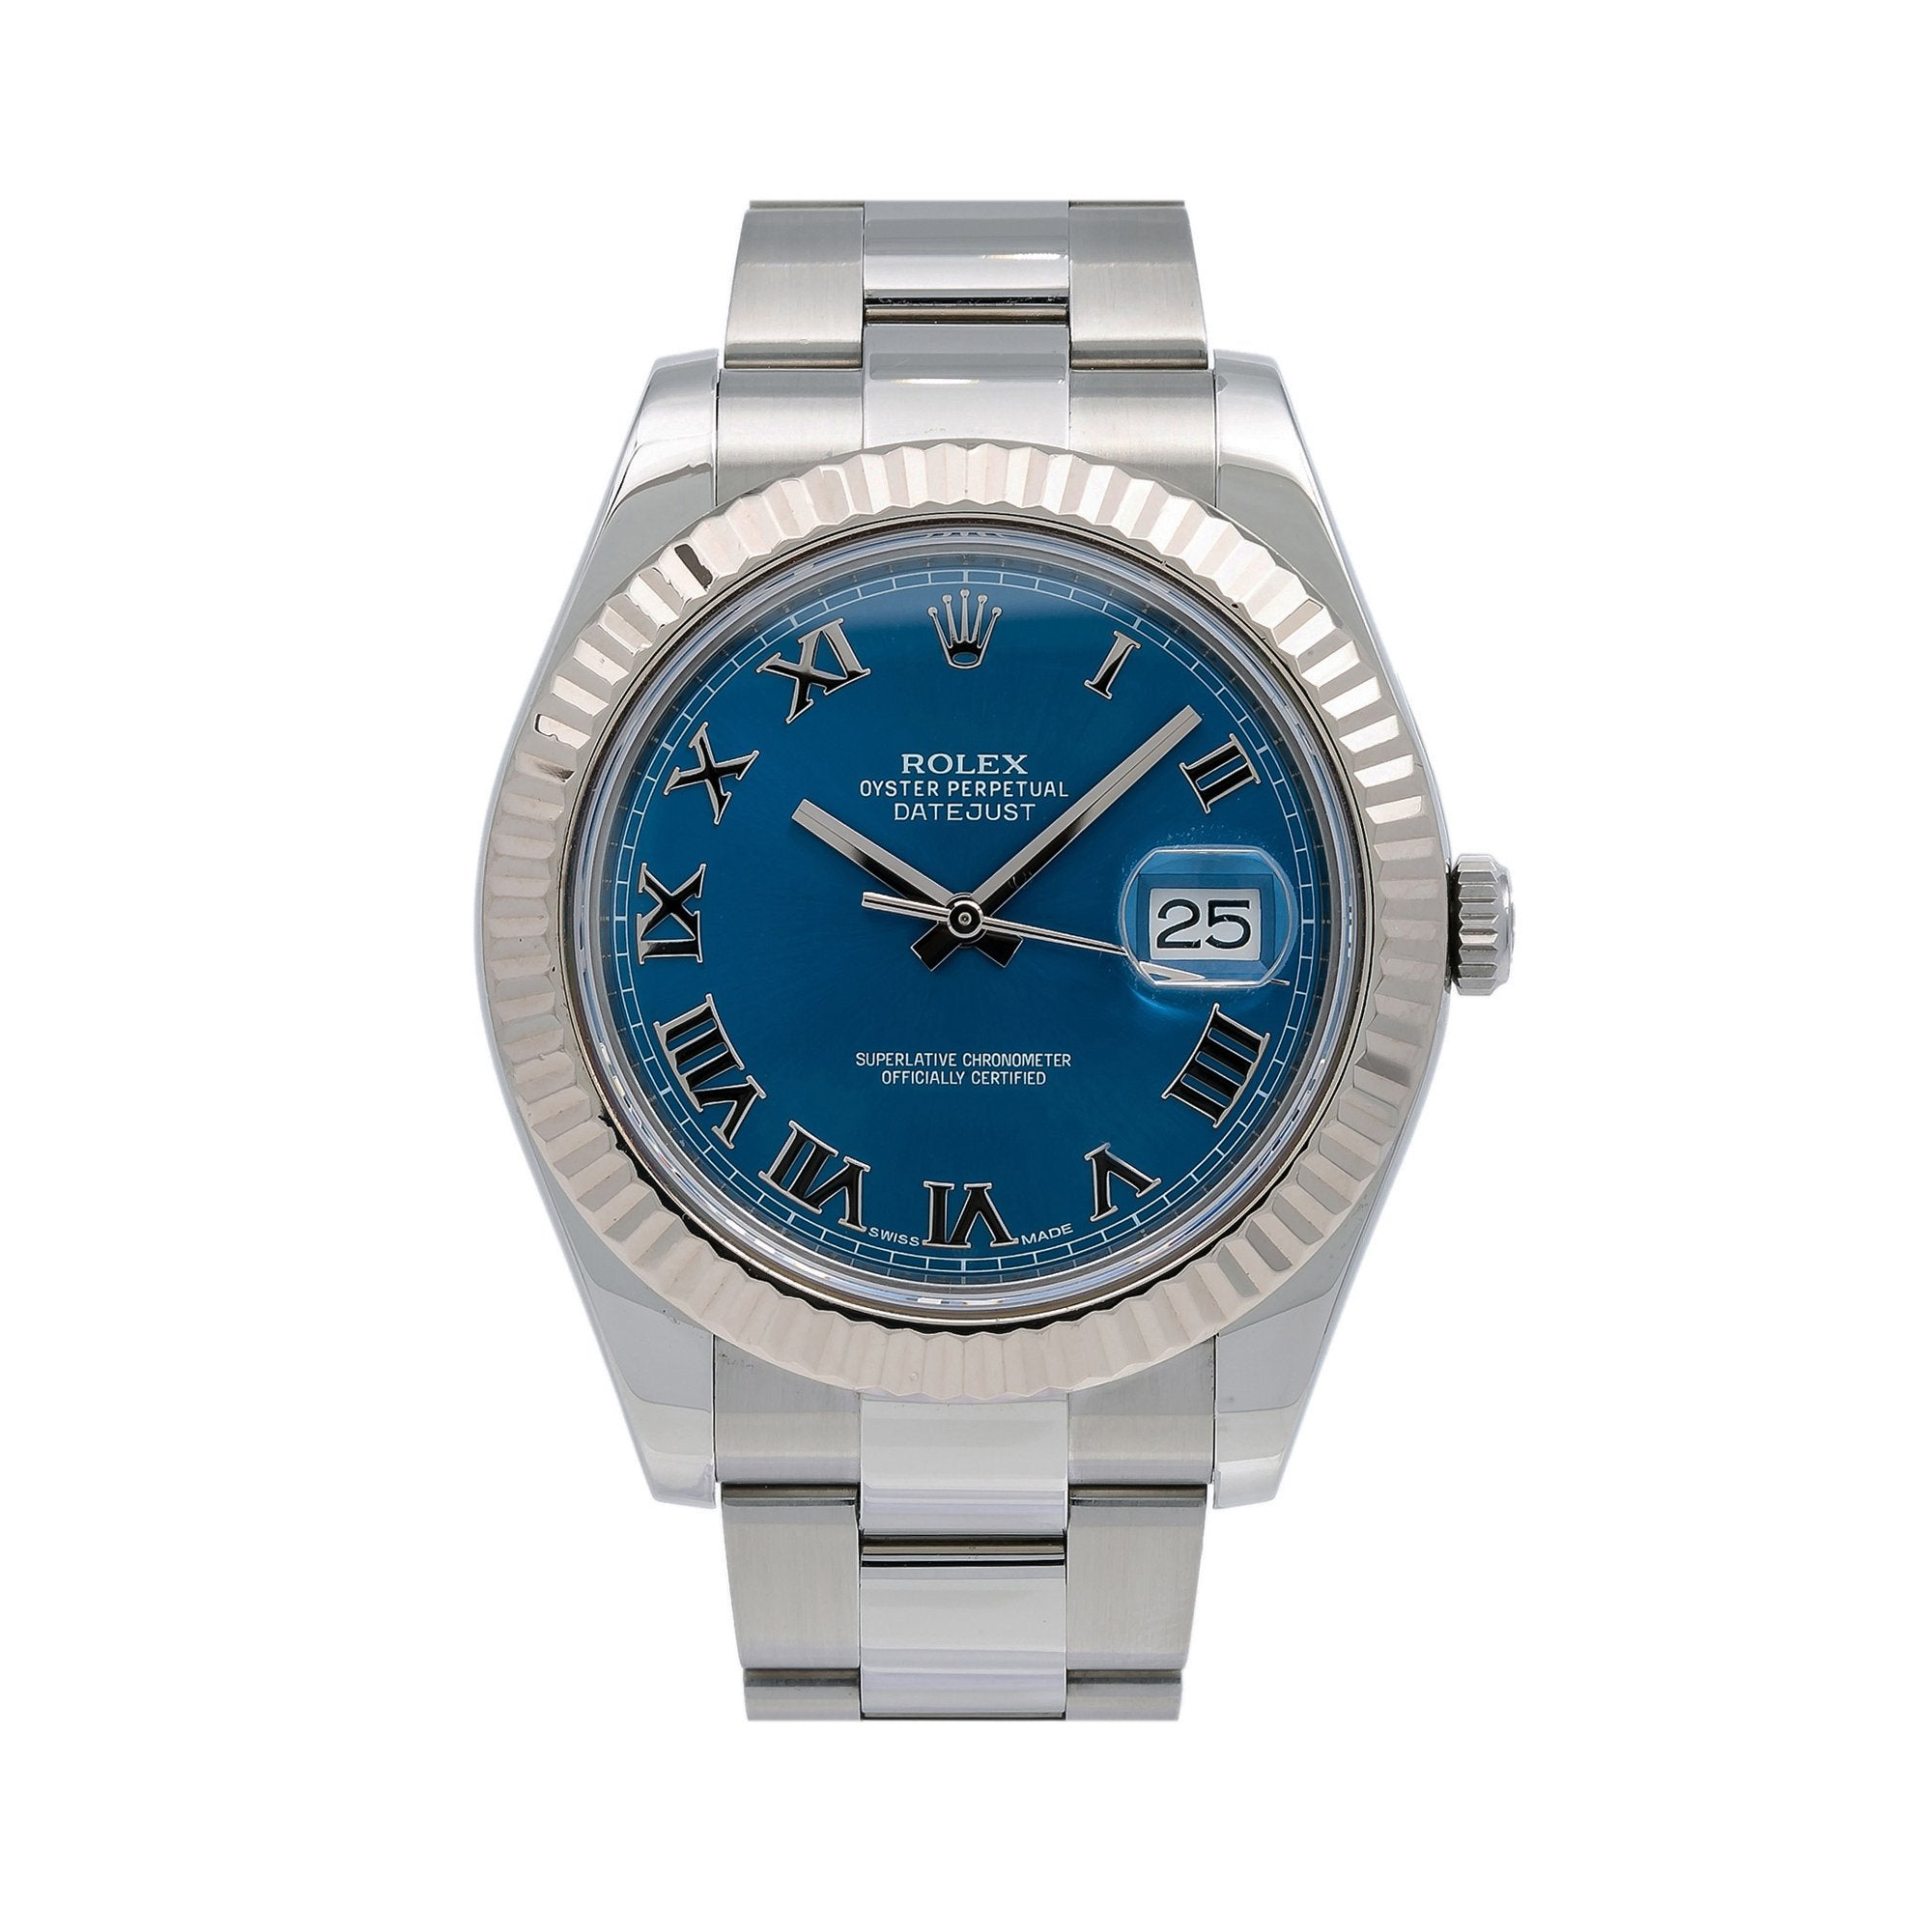 Rolex Datejust II 116334 41MM Blue Dial With Stainless Steel Oyster Bracelet